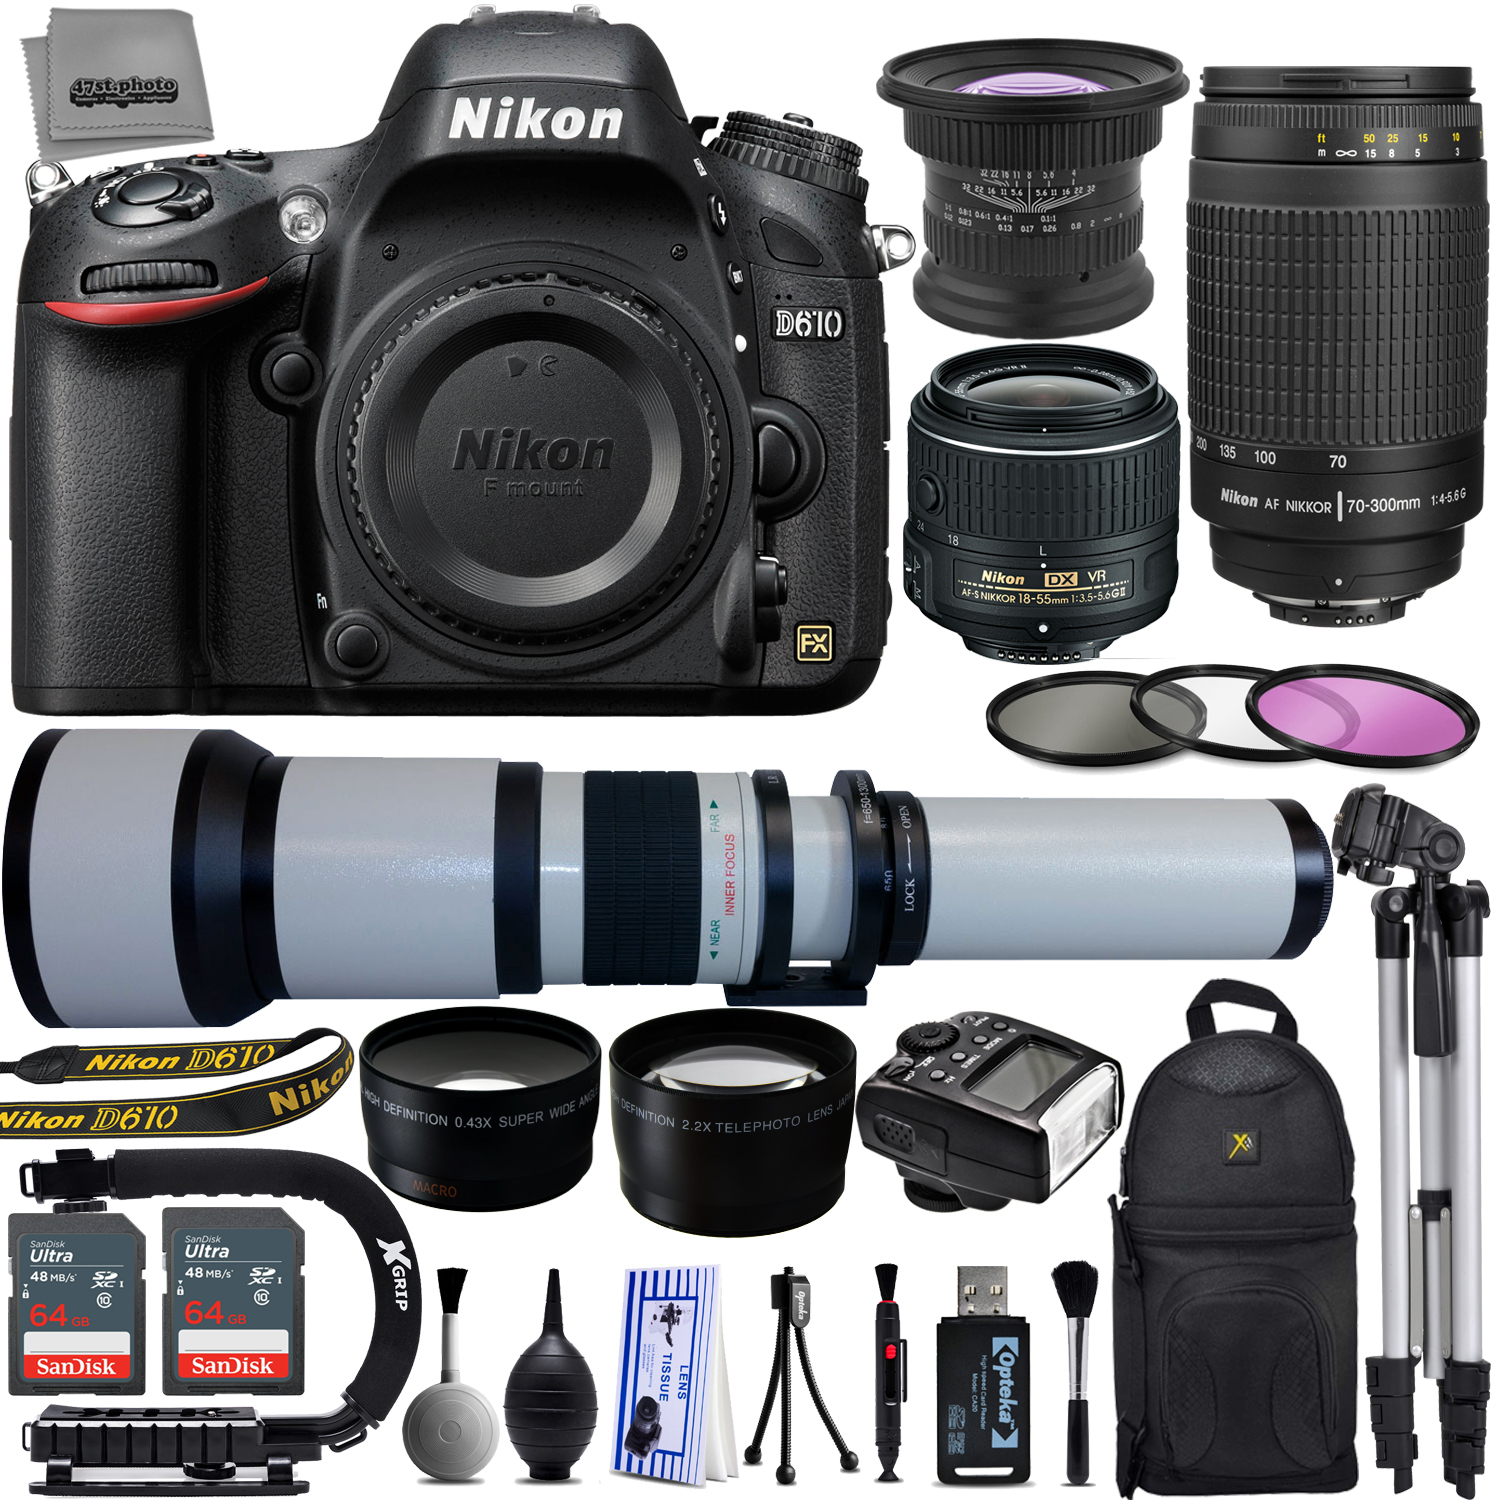 "Nikon D610 24.3MP 1080P FX DSLR Camera w/ 3.2"" LCD- Wi-Fi & GPS Ready- Built in Flash w/ Nikon 18-55mm VR II - Nikon 70-300mm G - 650-2600mm 5 Lens - 128GB - 23PC Ultra Zoom Kit"